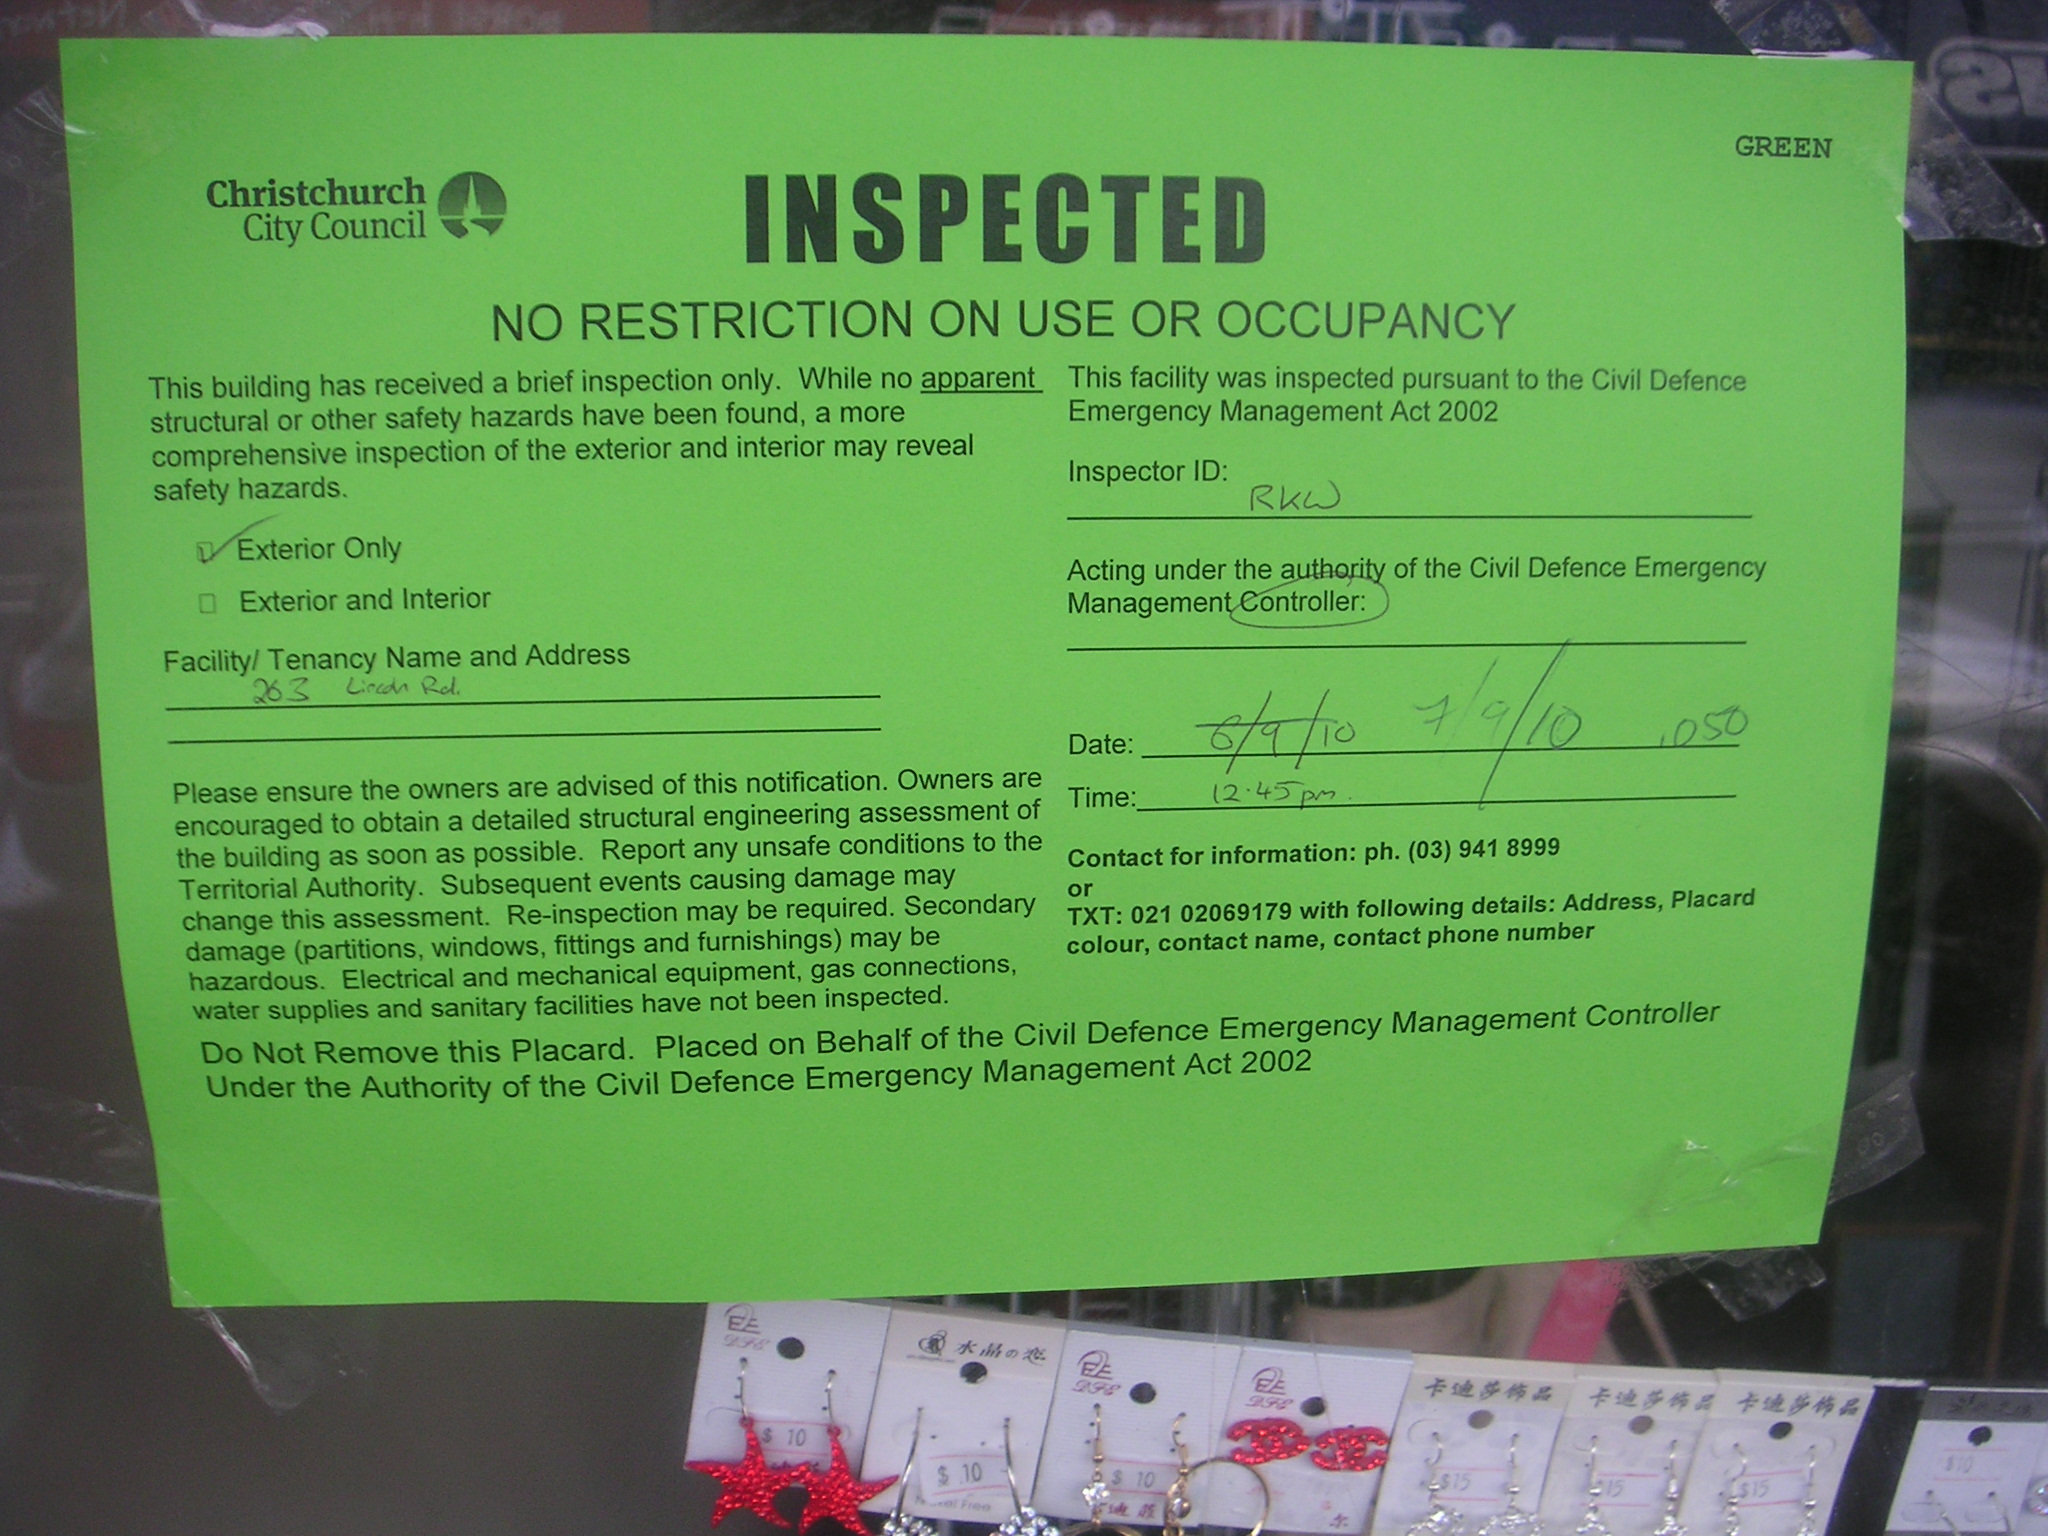 A Structural Inspection Notice Verifies As Safe For Use